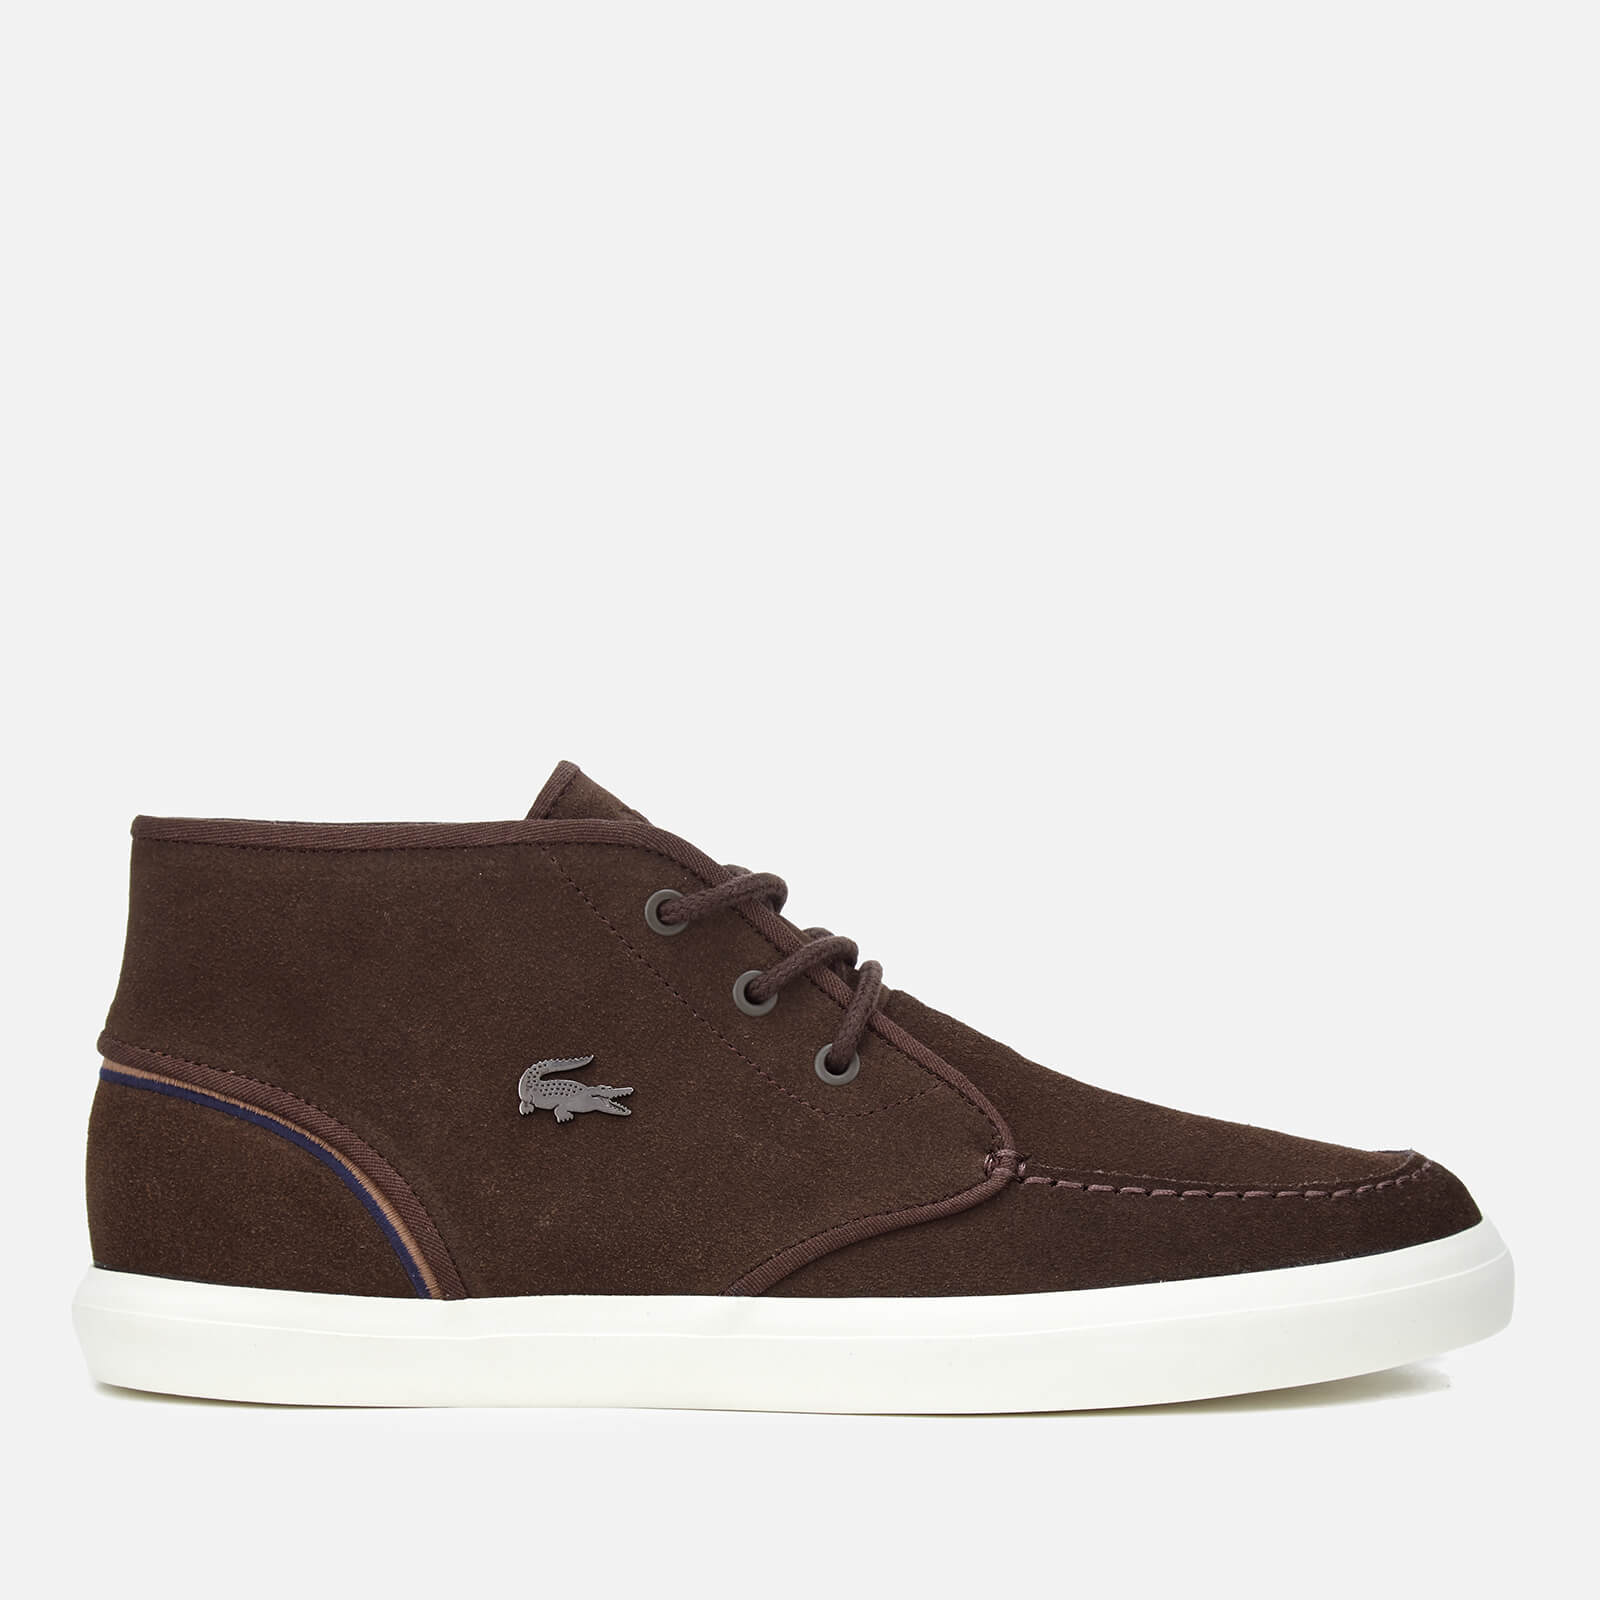 32f8ef336a05bf Lacoste Men s Sevrin Mid 317 1 Chukka Boots - Dark Brown - Free UK Delivery  over £50